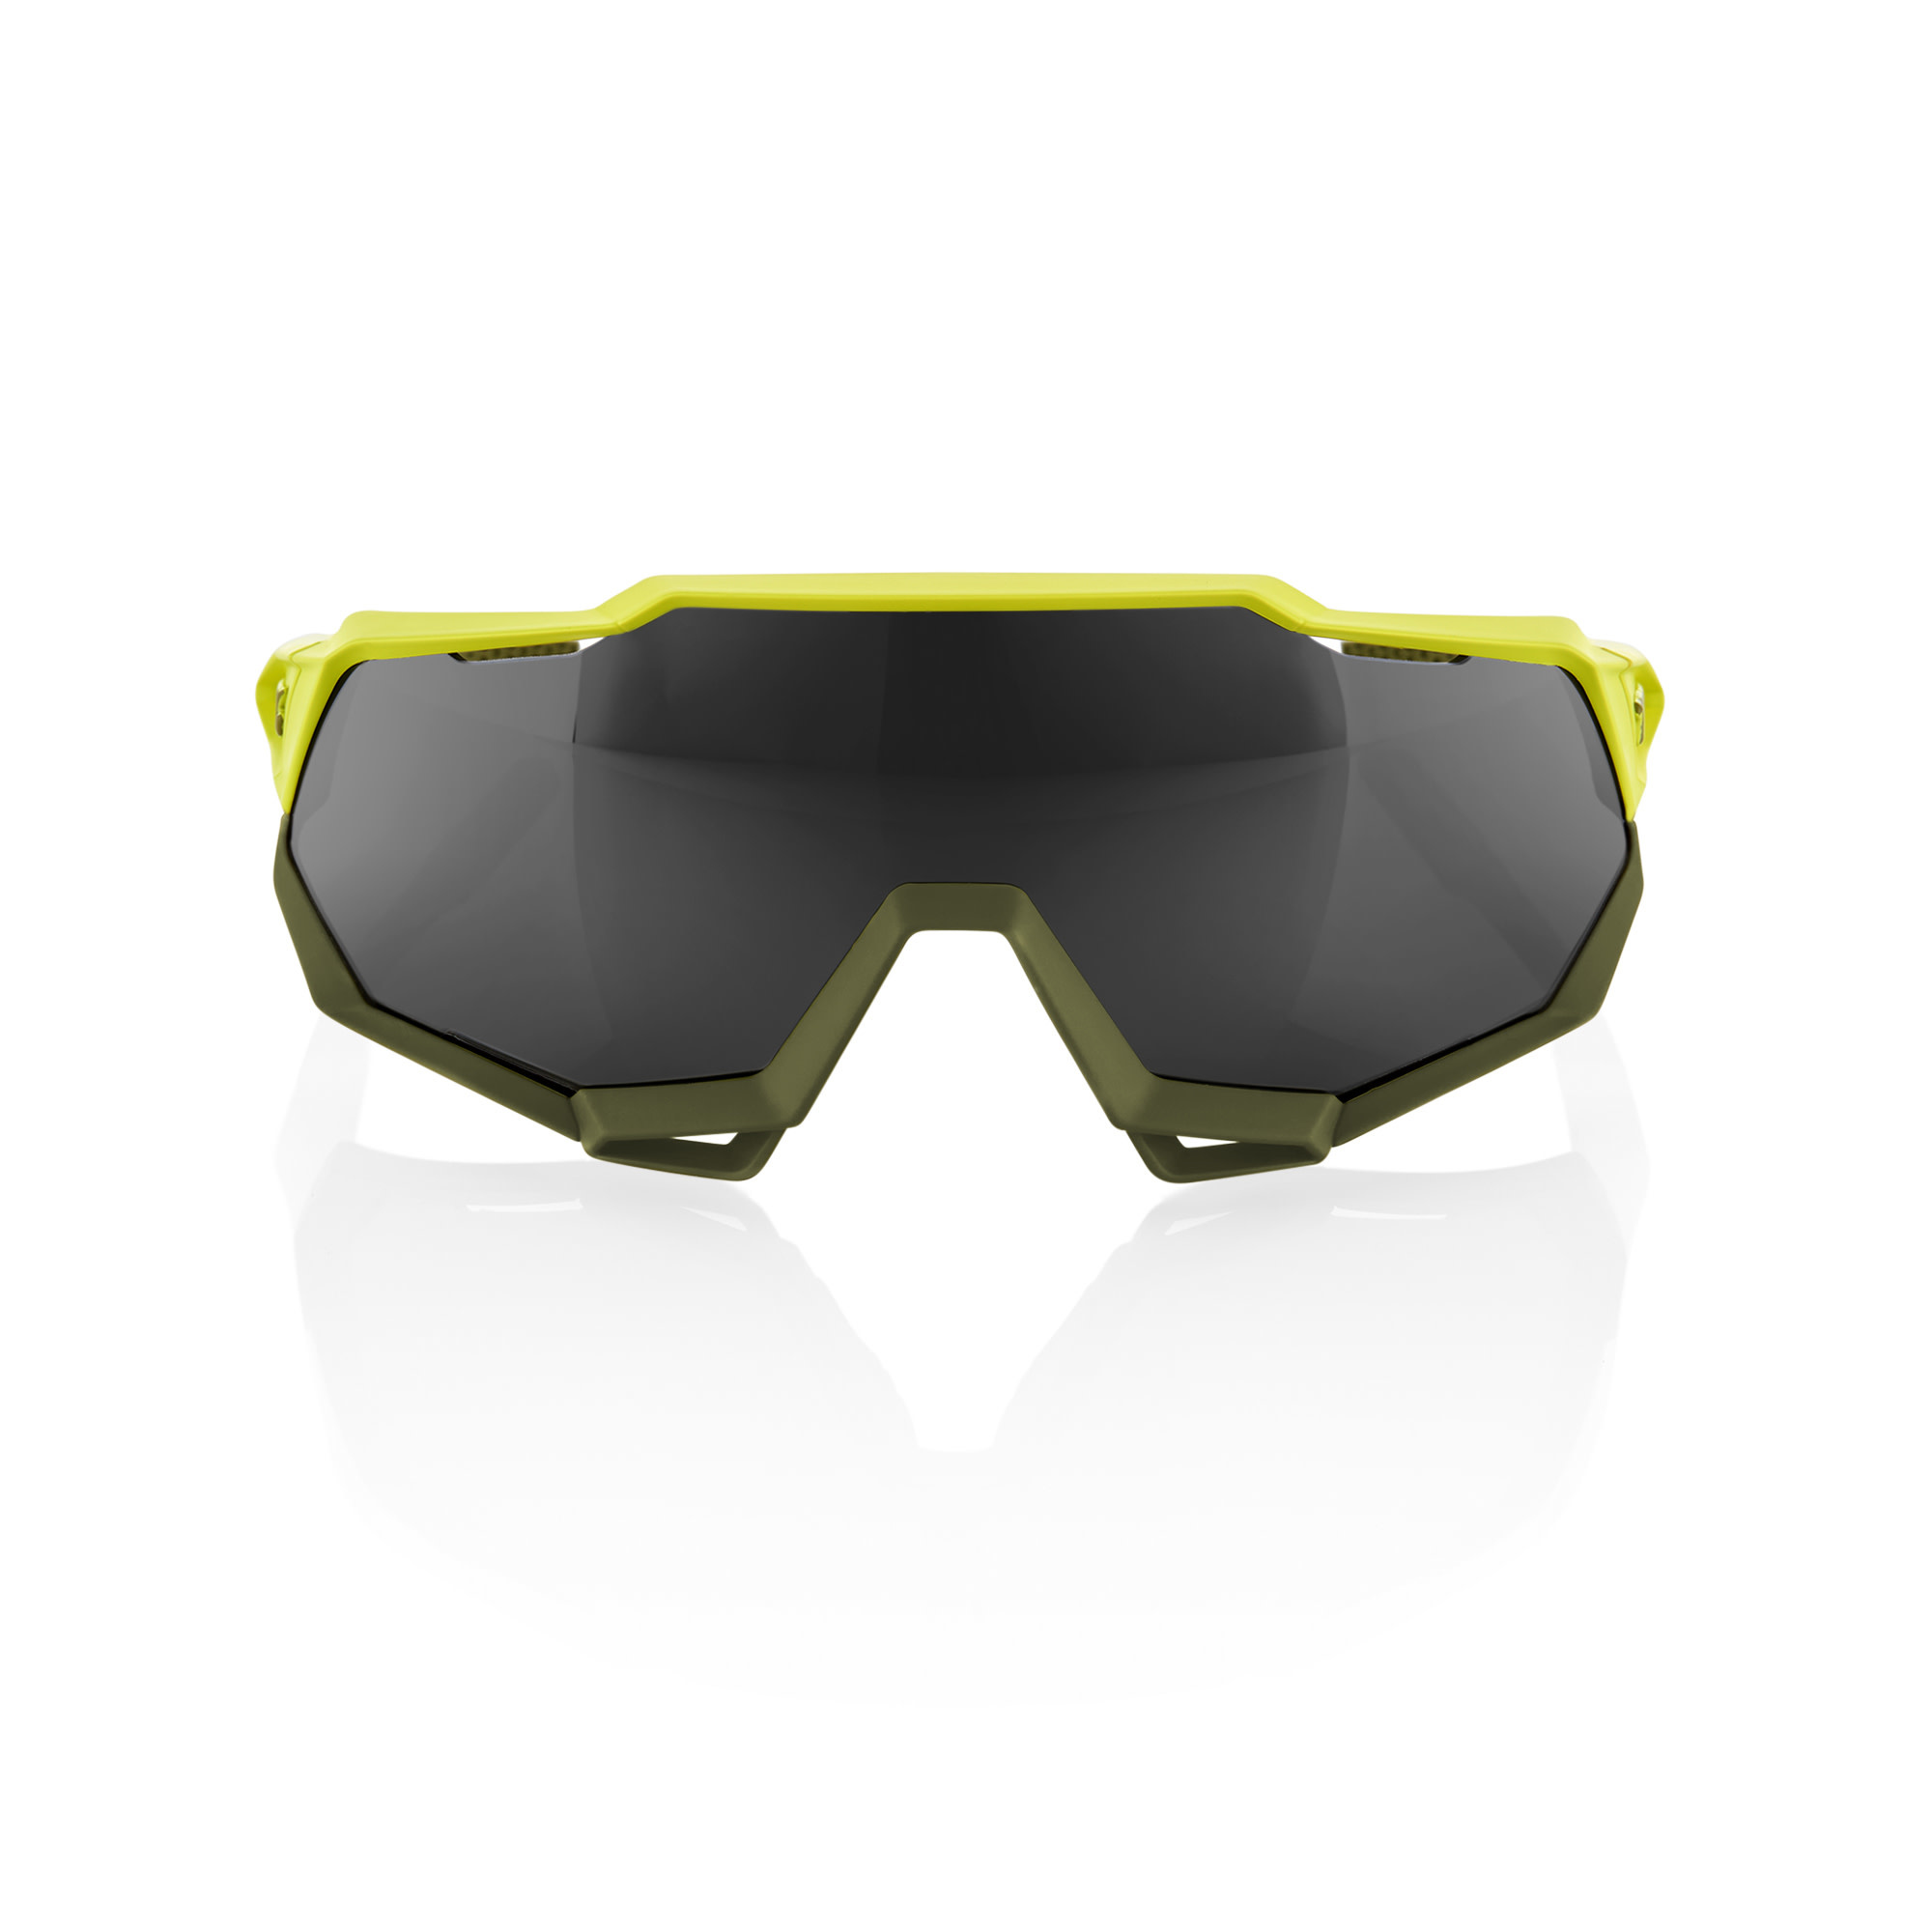 Speedtrap Soft Tact Banana Black Mirror Lens-3